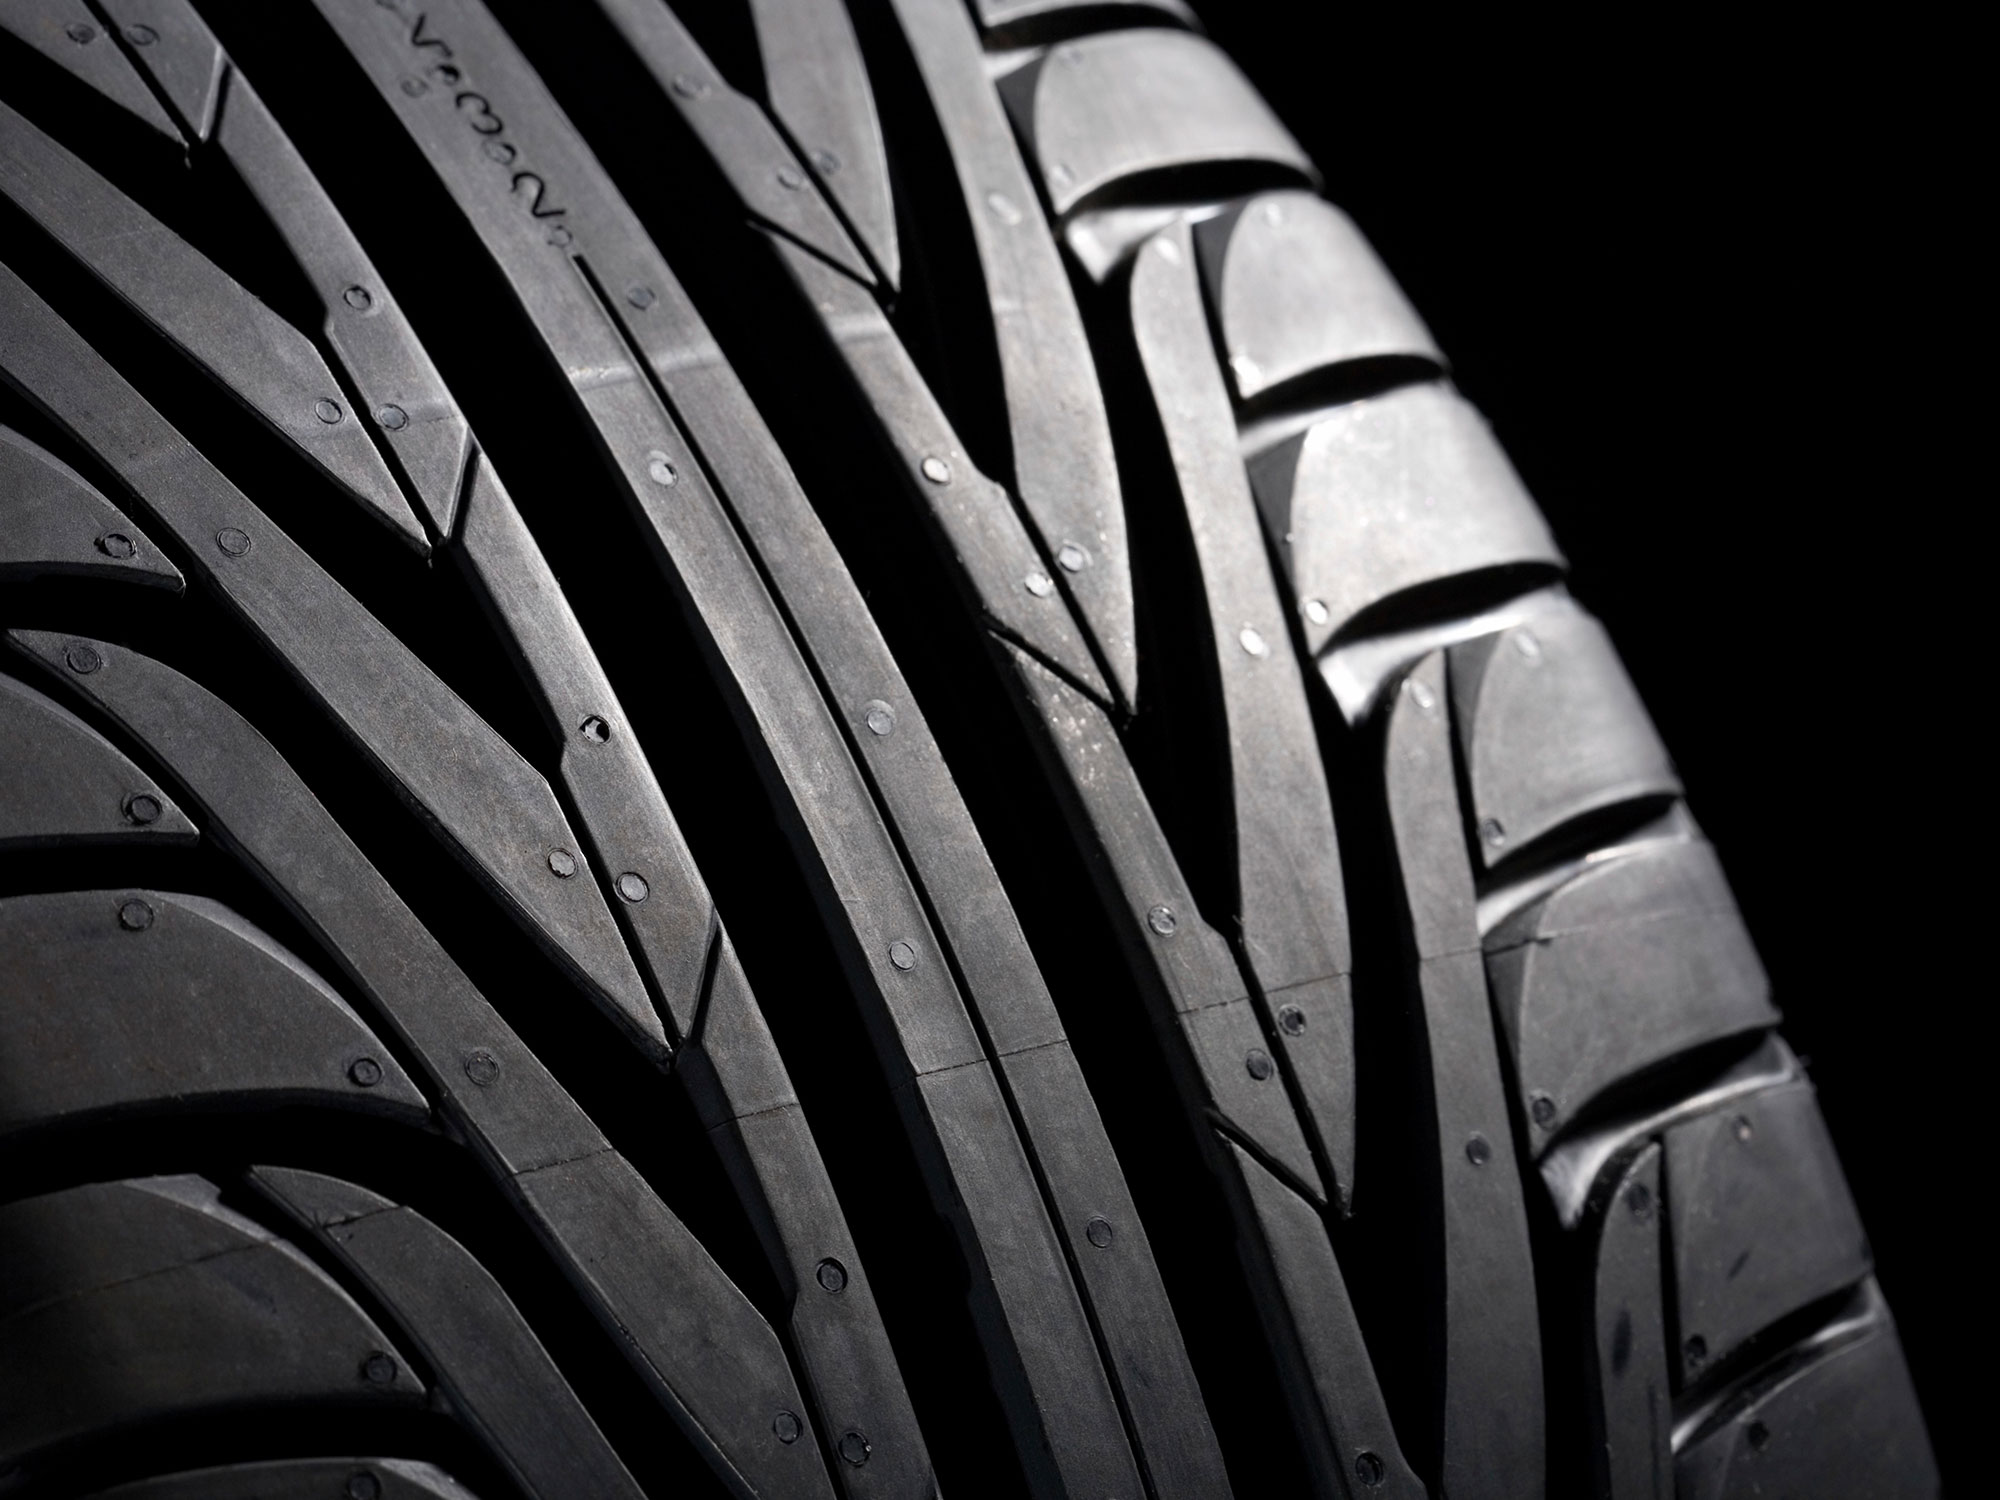 BUY 3 TIRES & GET THE 4TH FREE plus Free Rotation for the Life of the tires